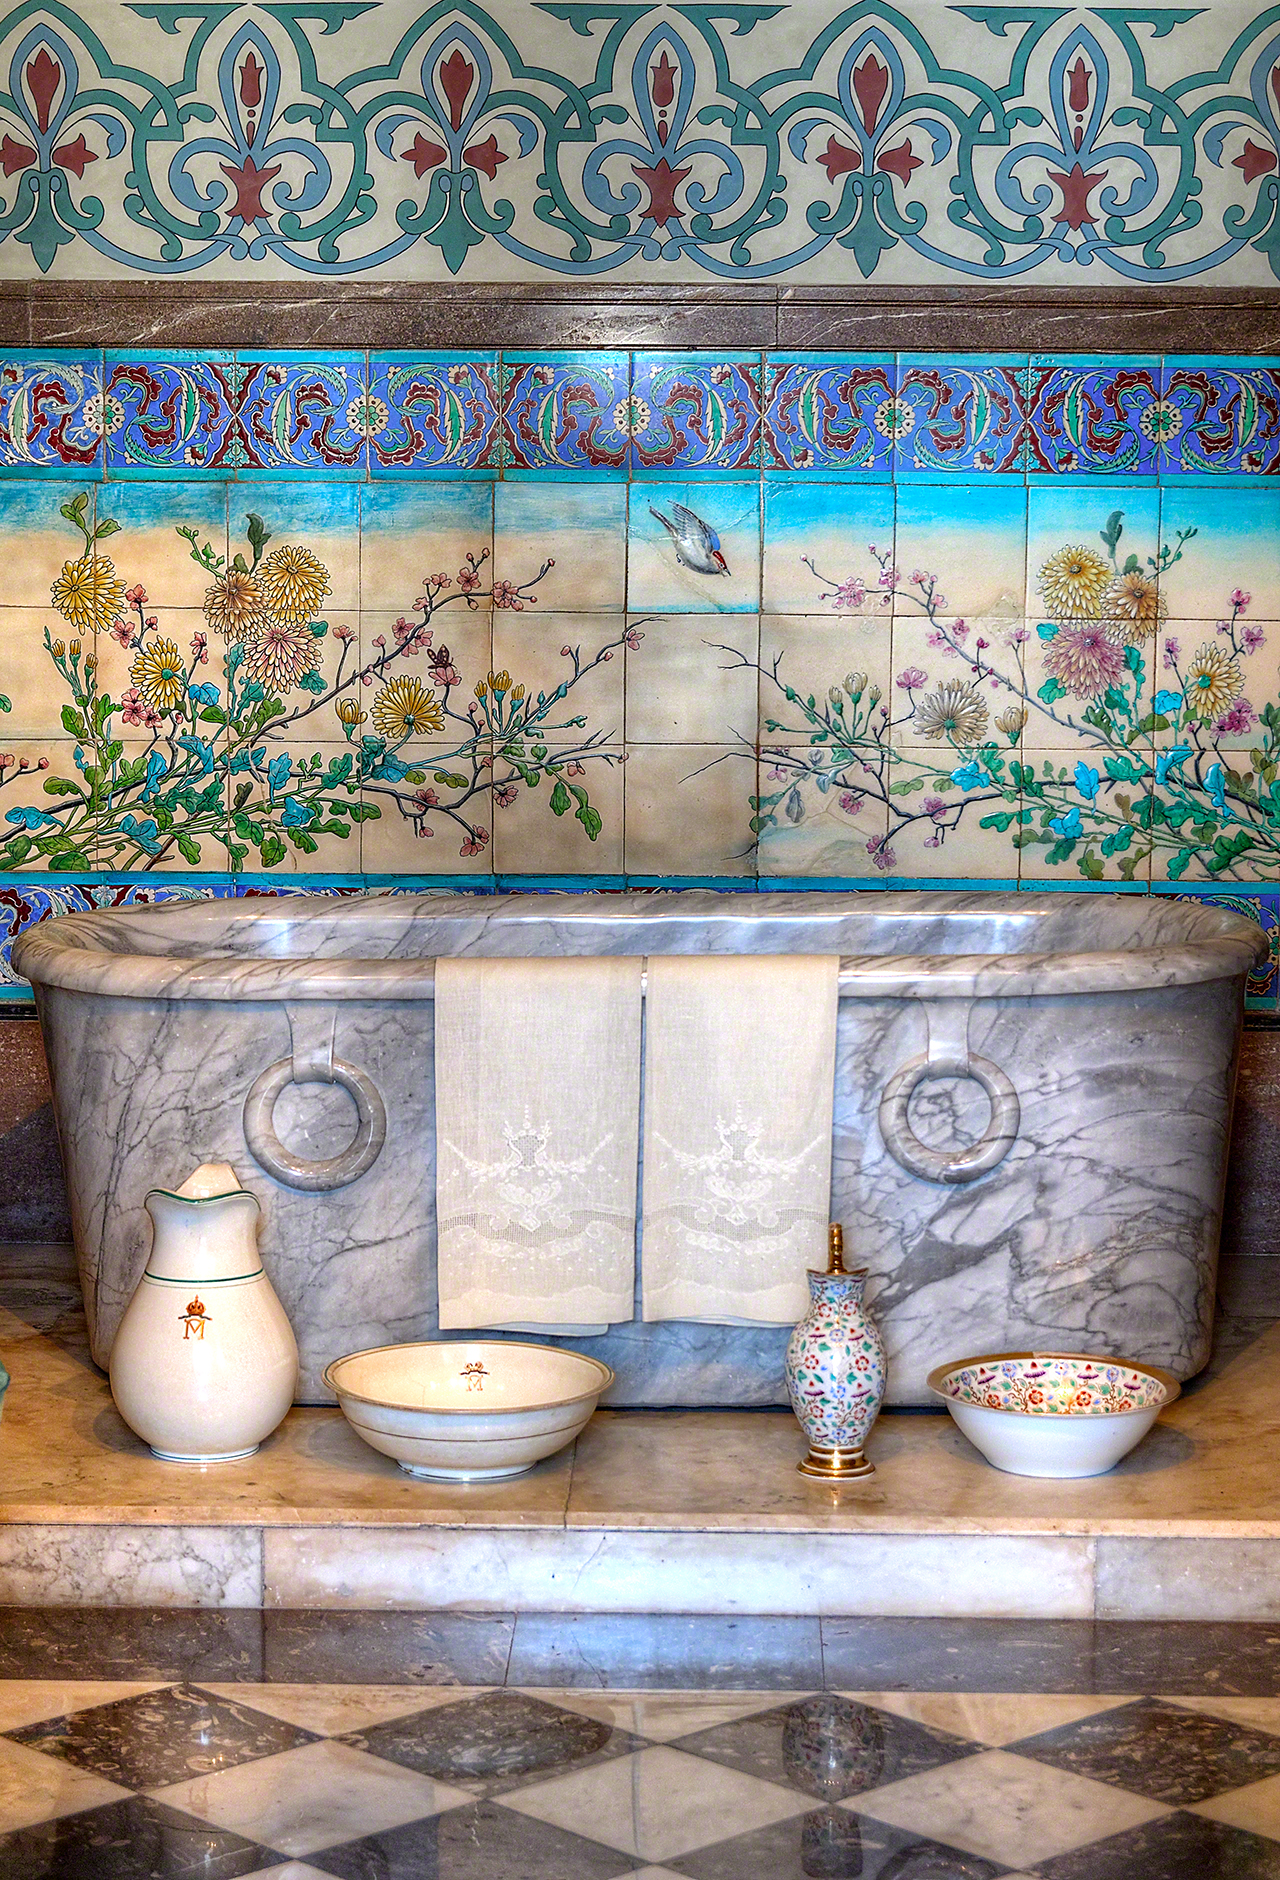 Marble bathtub and hand painted ceramic tiles